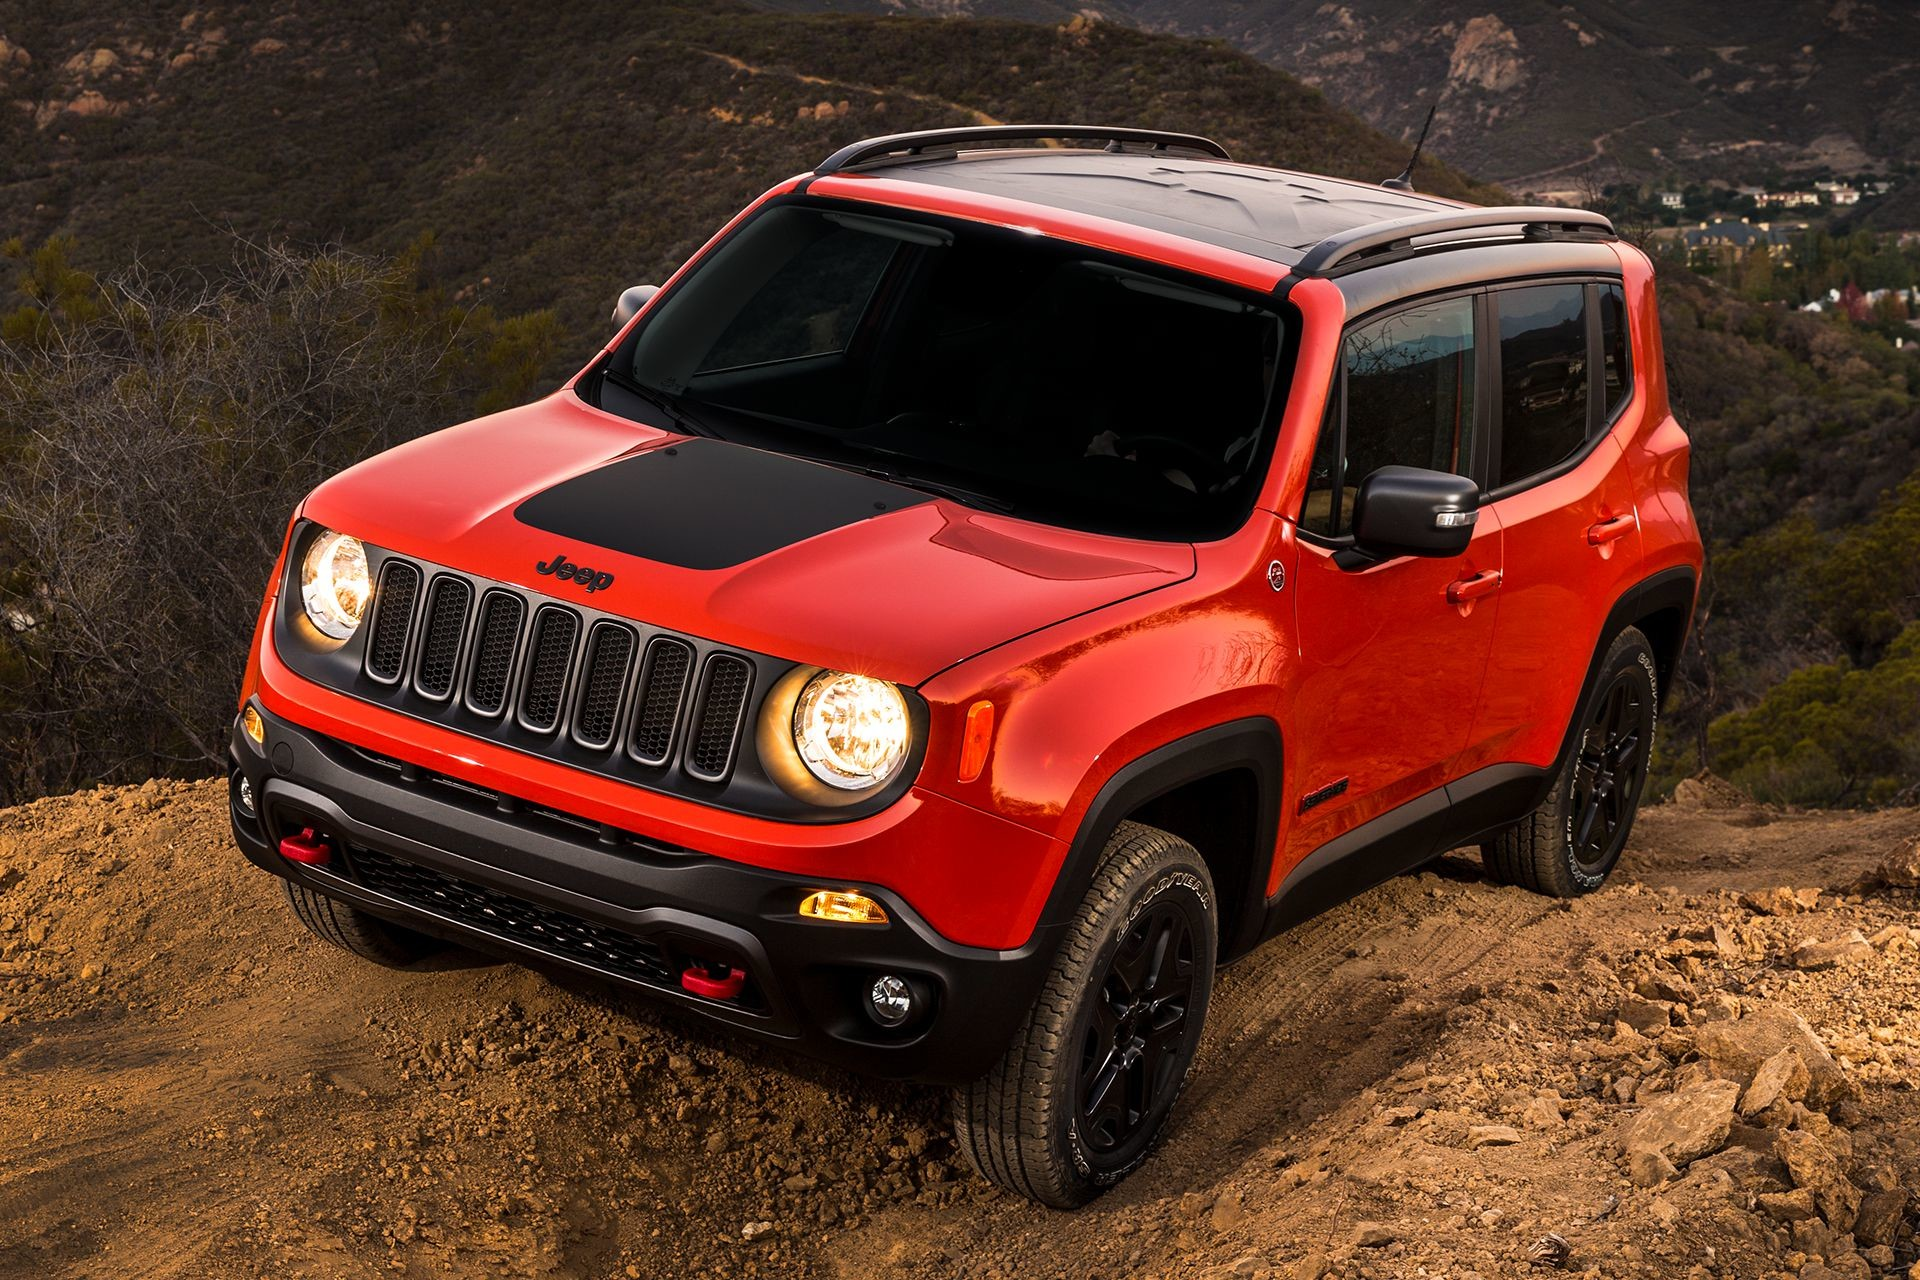 2018 Jeep Renegade small SUV off-roading